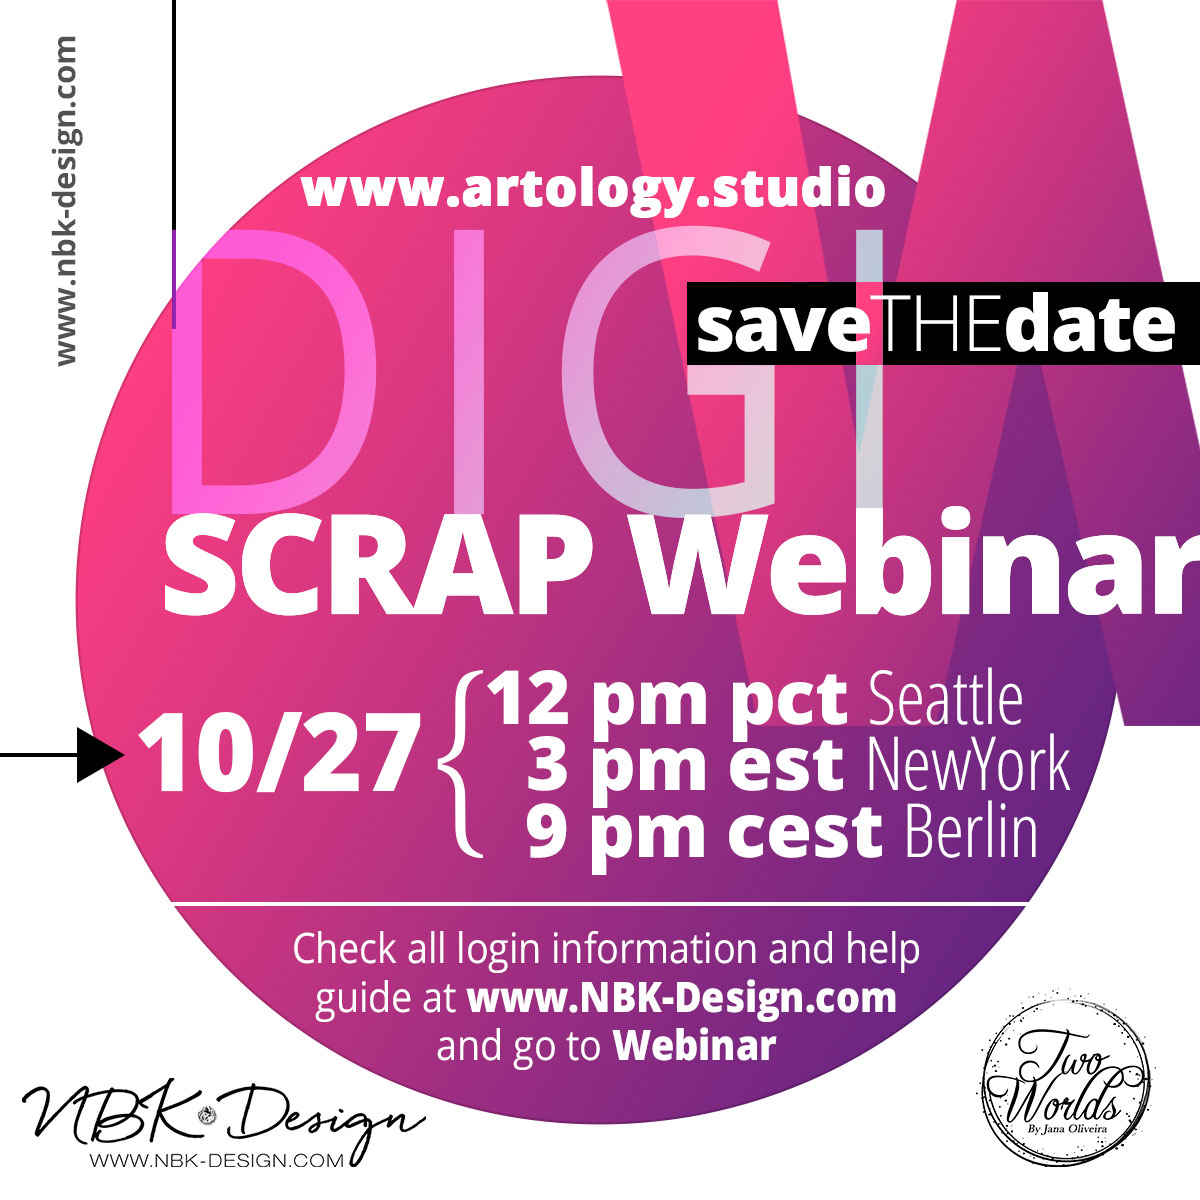 Save the Date for the new upcoming Webinar – Details inside!